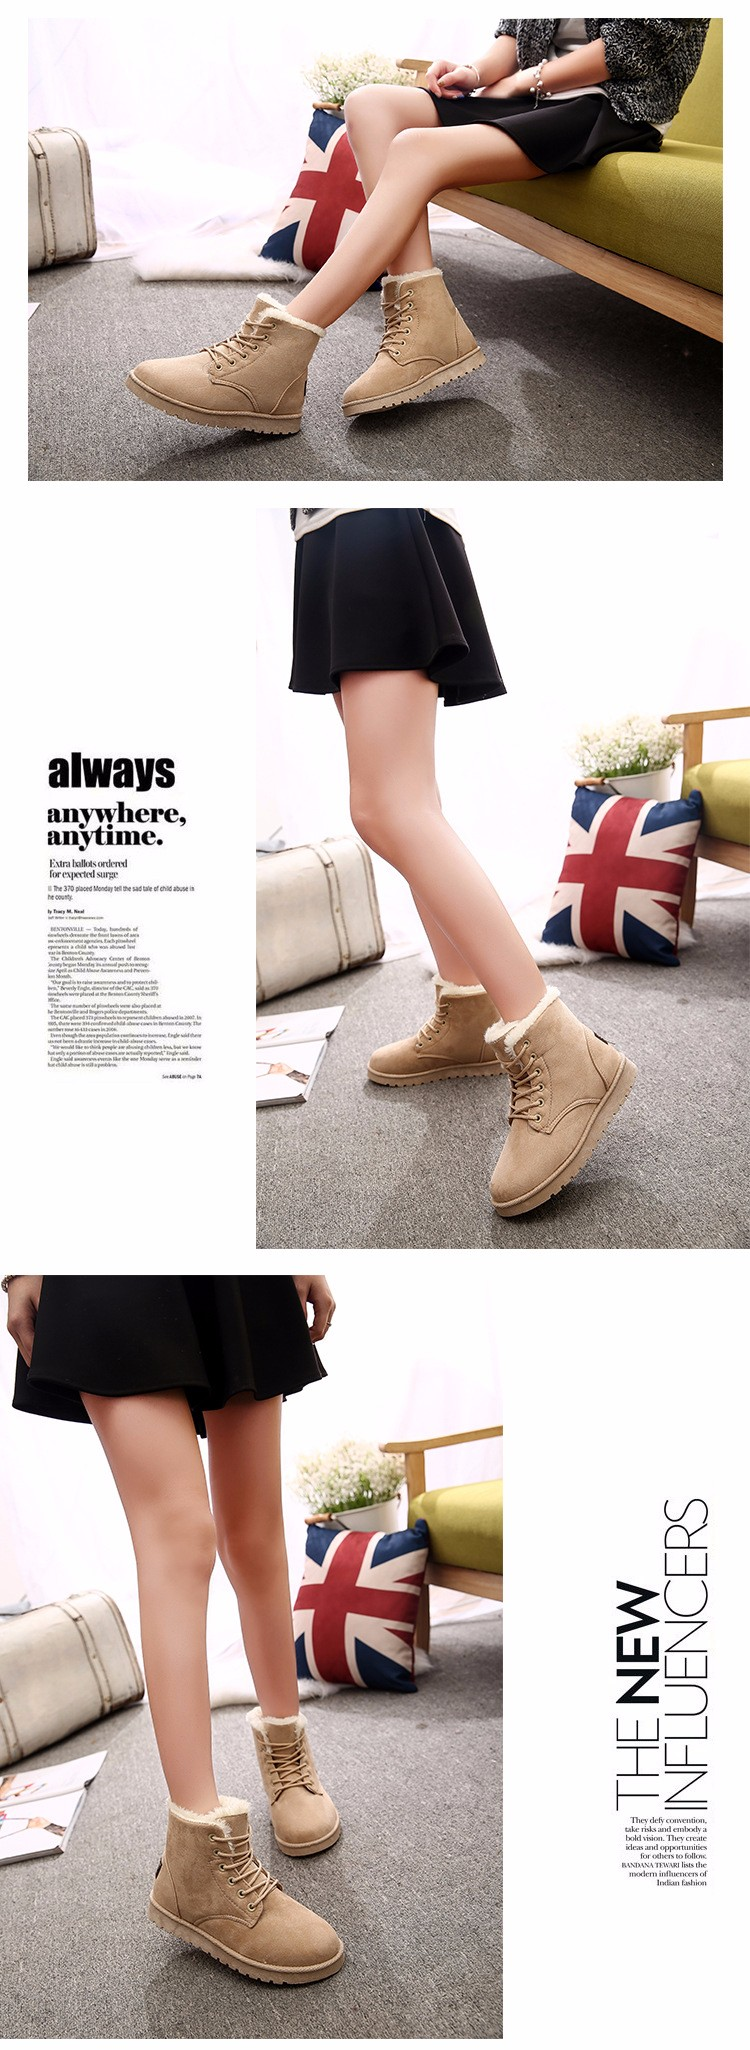 2016 Winter Woman Boots Lace-up Solid Flat Ankle Boots Casual Round Toe Woman Shoes Fashion Warm Plus Cotton Shoes ST903 (5)